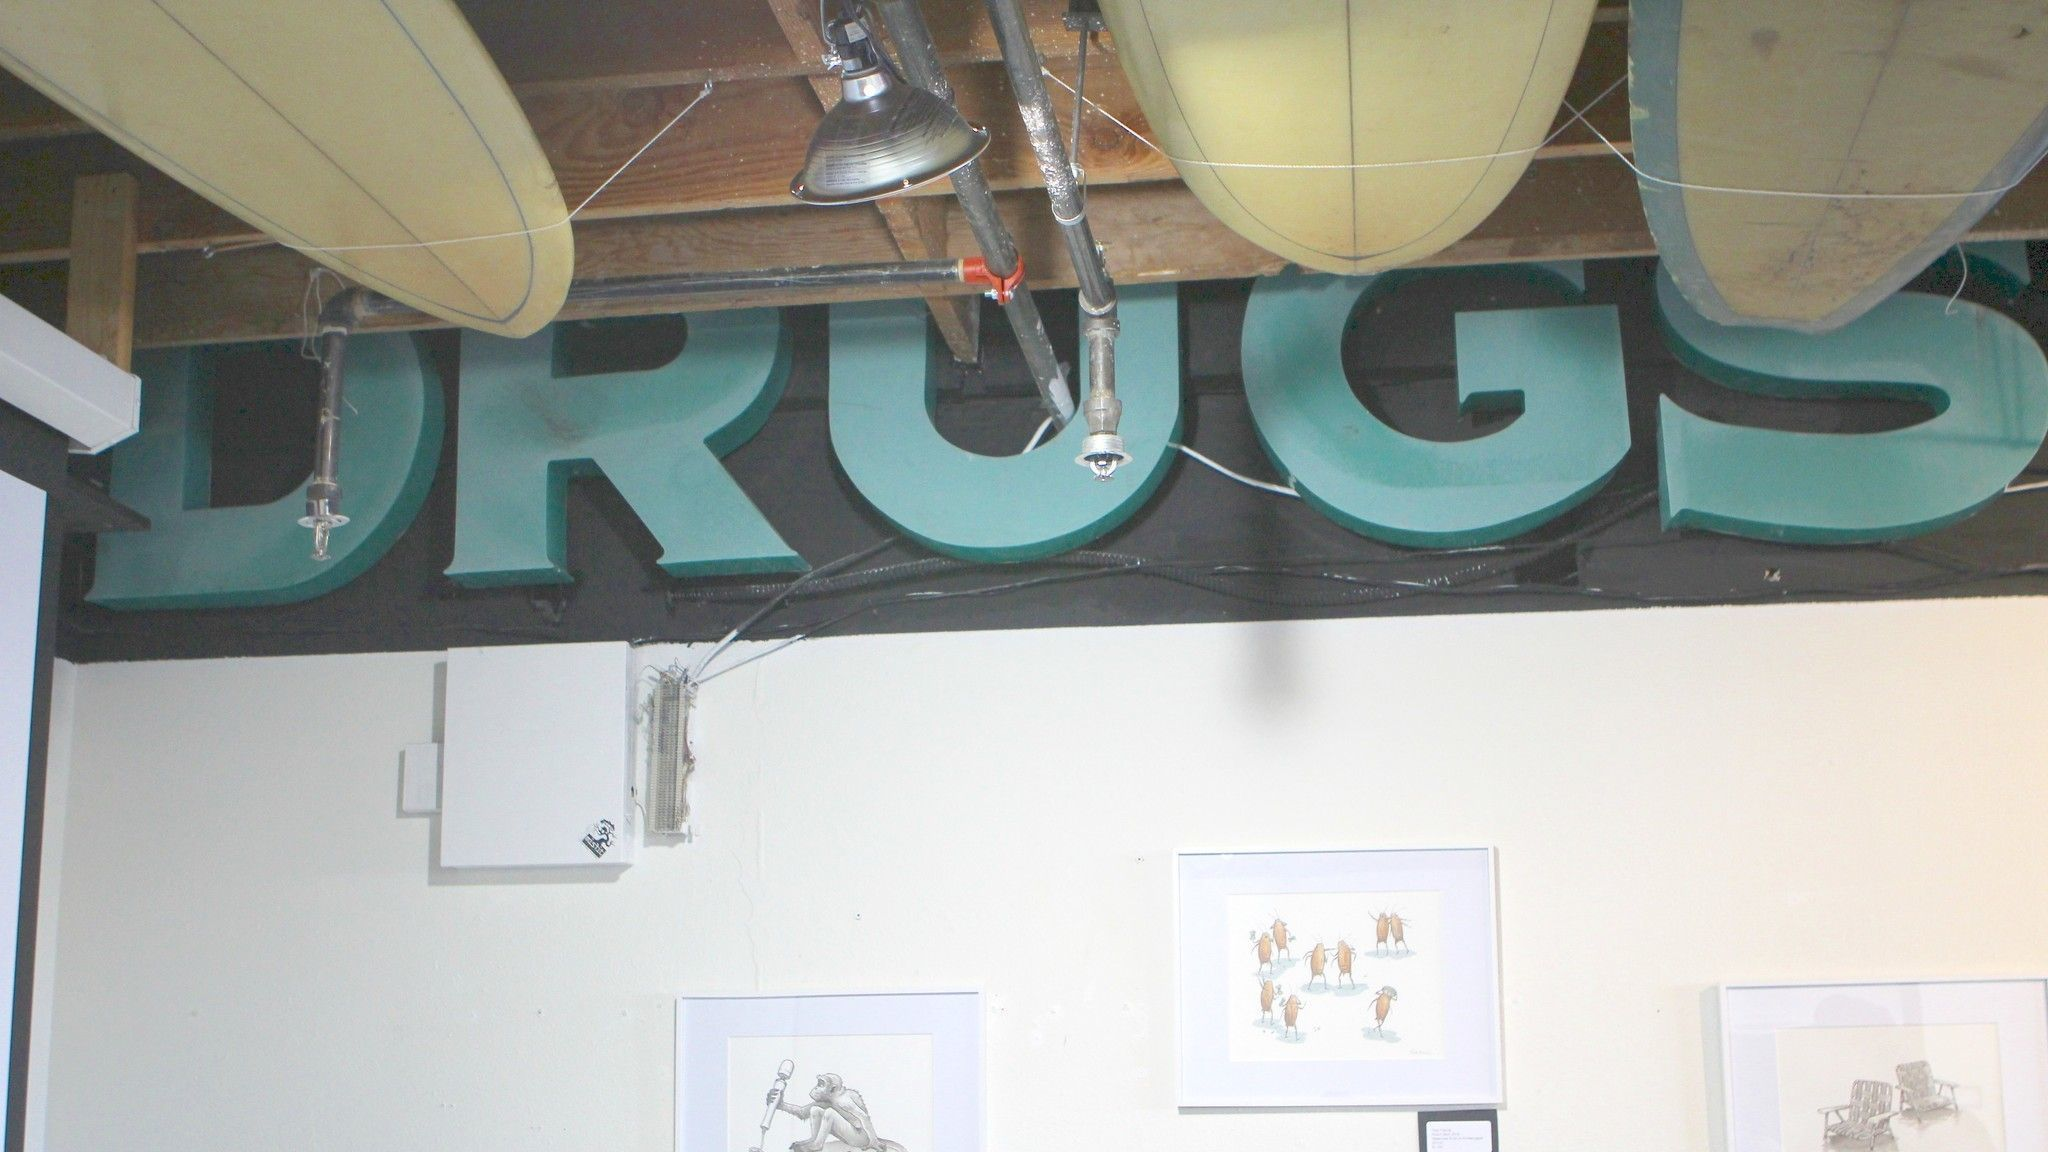 The second half of the Burns Drugs sign is preserved and on permanent display at the Misfit Pictures art gallery at 565 Pearl St. Co-owner Pierce Kavanagh paid $25 per letter to